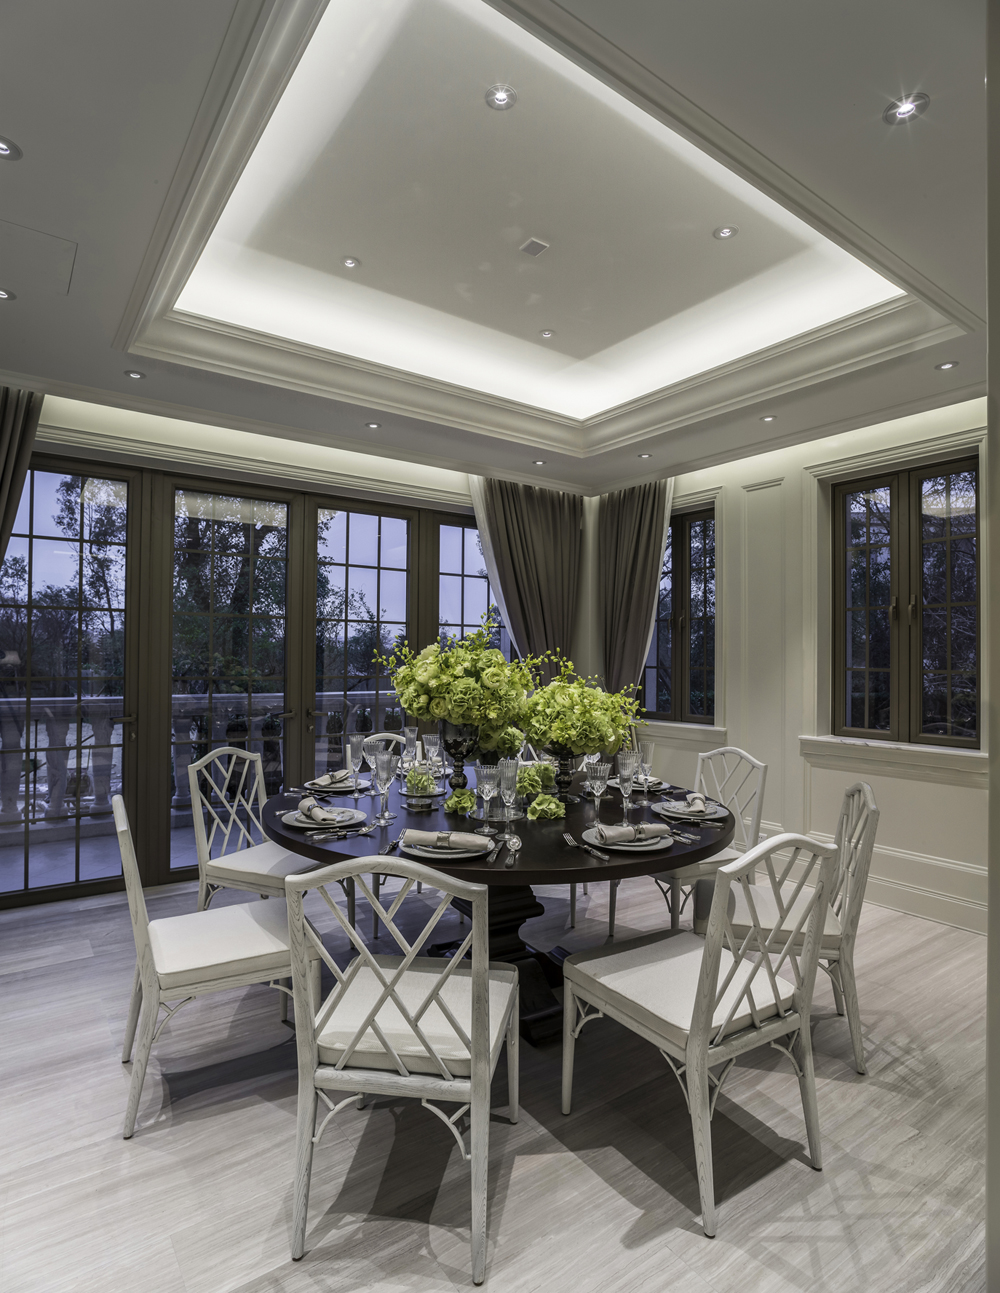 Attitude Asia Interior Design Luxury residential interior by Suzanne Wong Guangzhou China Panyu